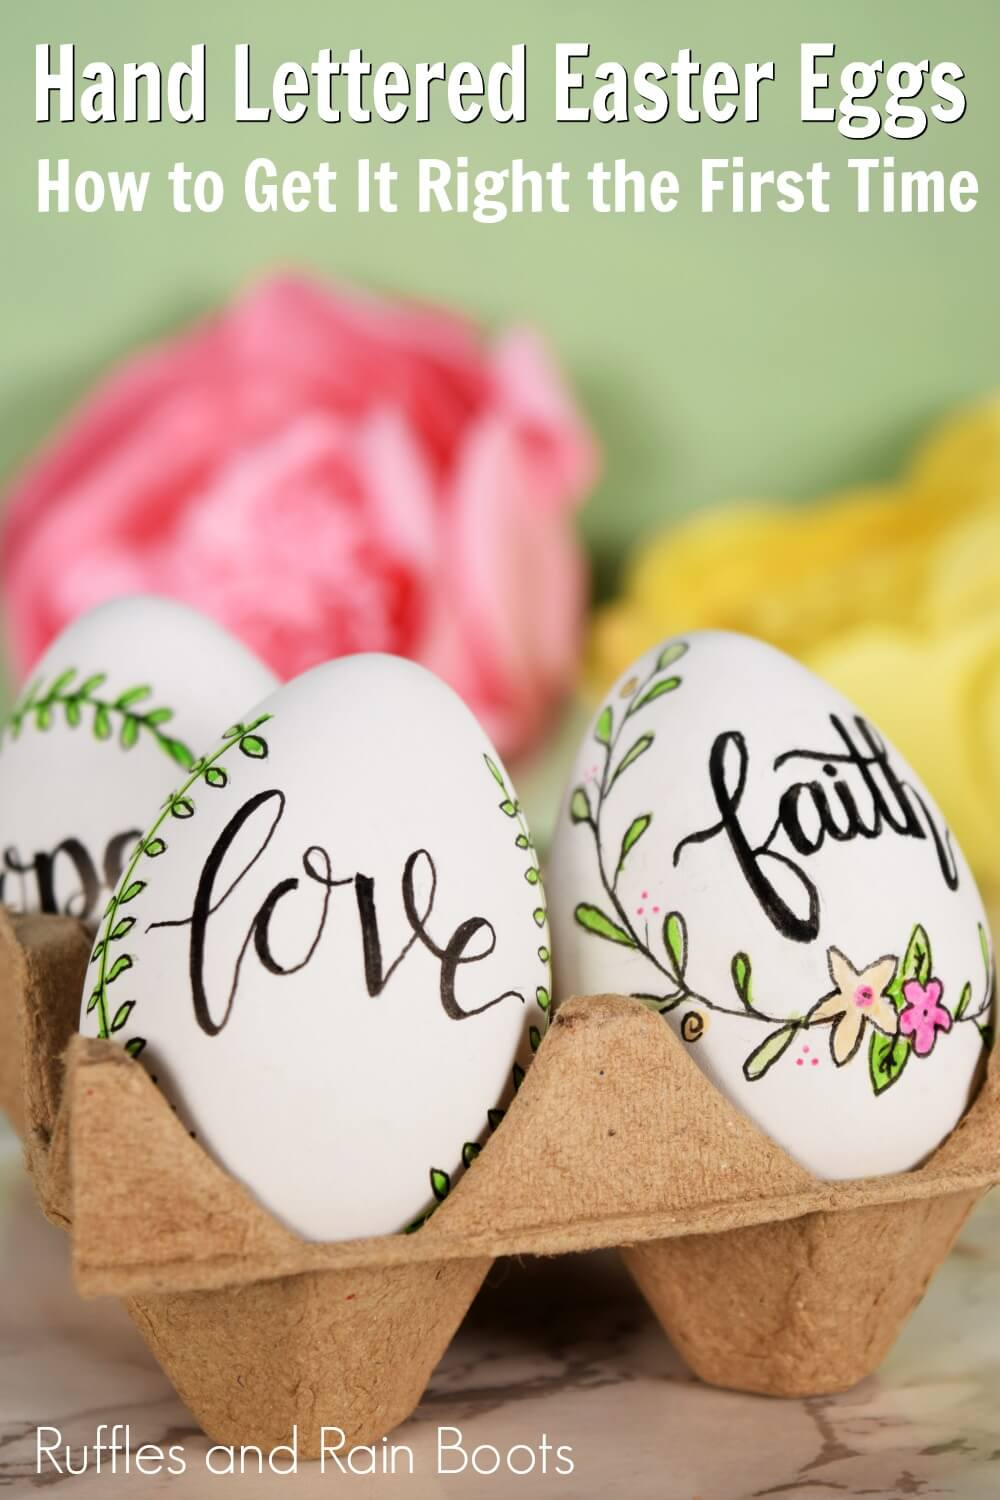 farmhouse Easter decor on green background with text which reads hand lettered easter eggs